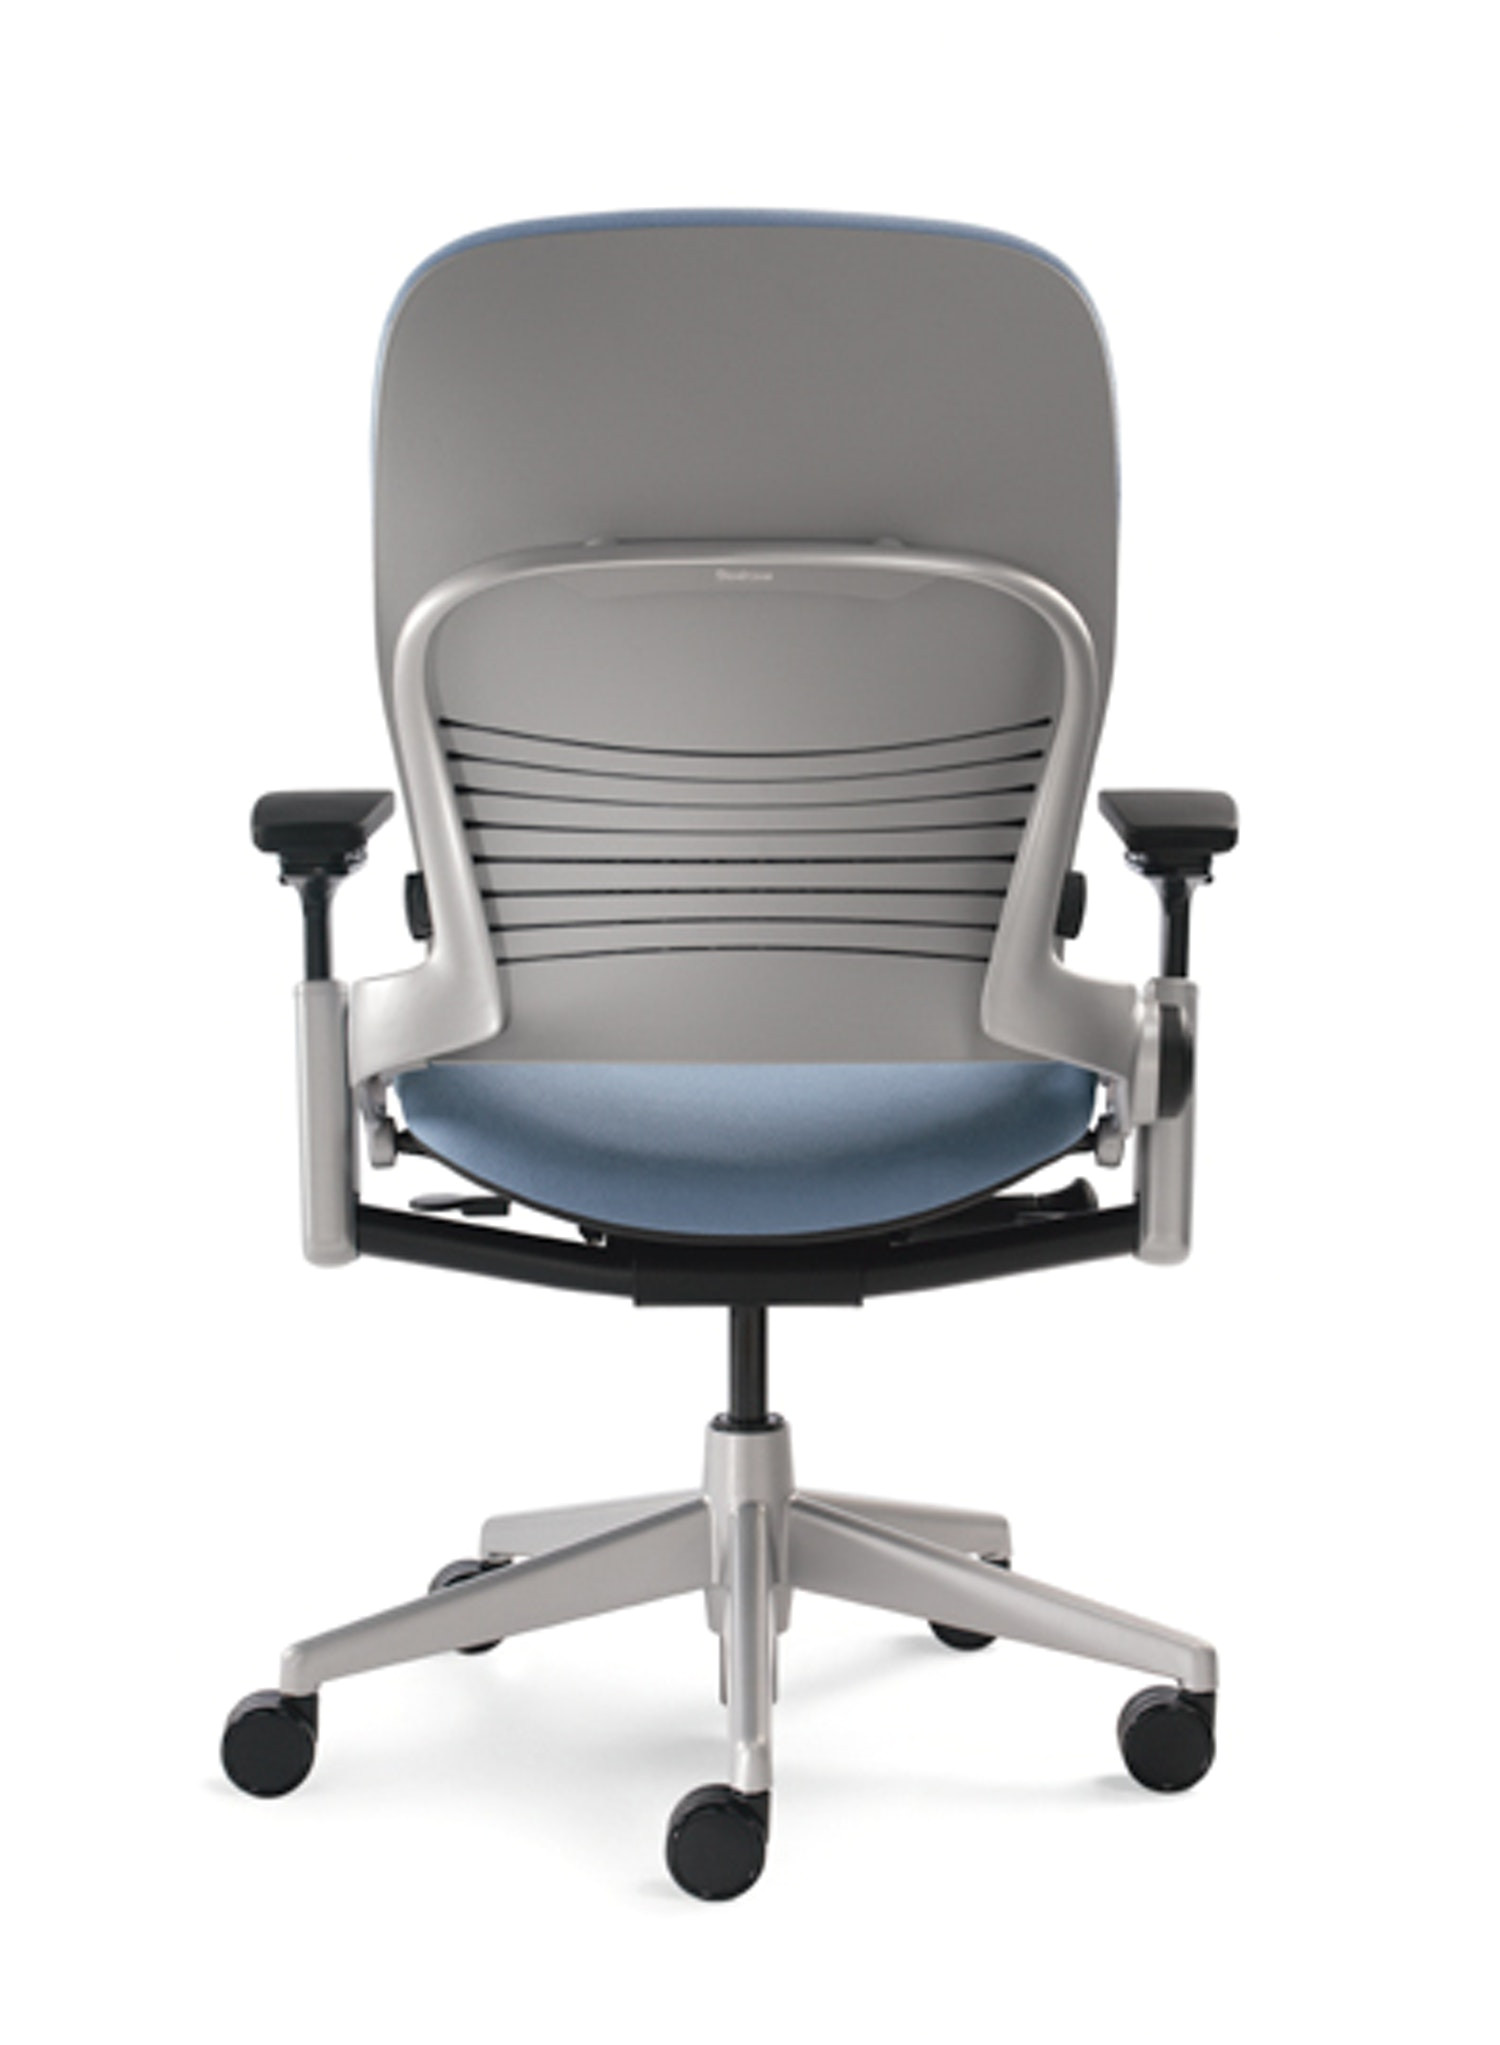 Wobble Chair for Students Luxury Wobble Chair